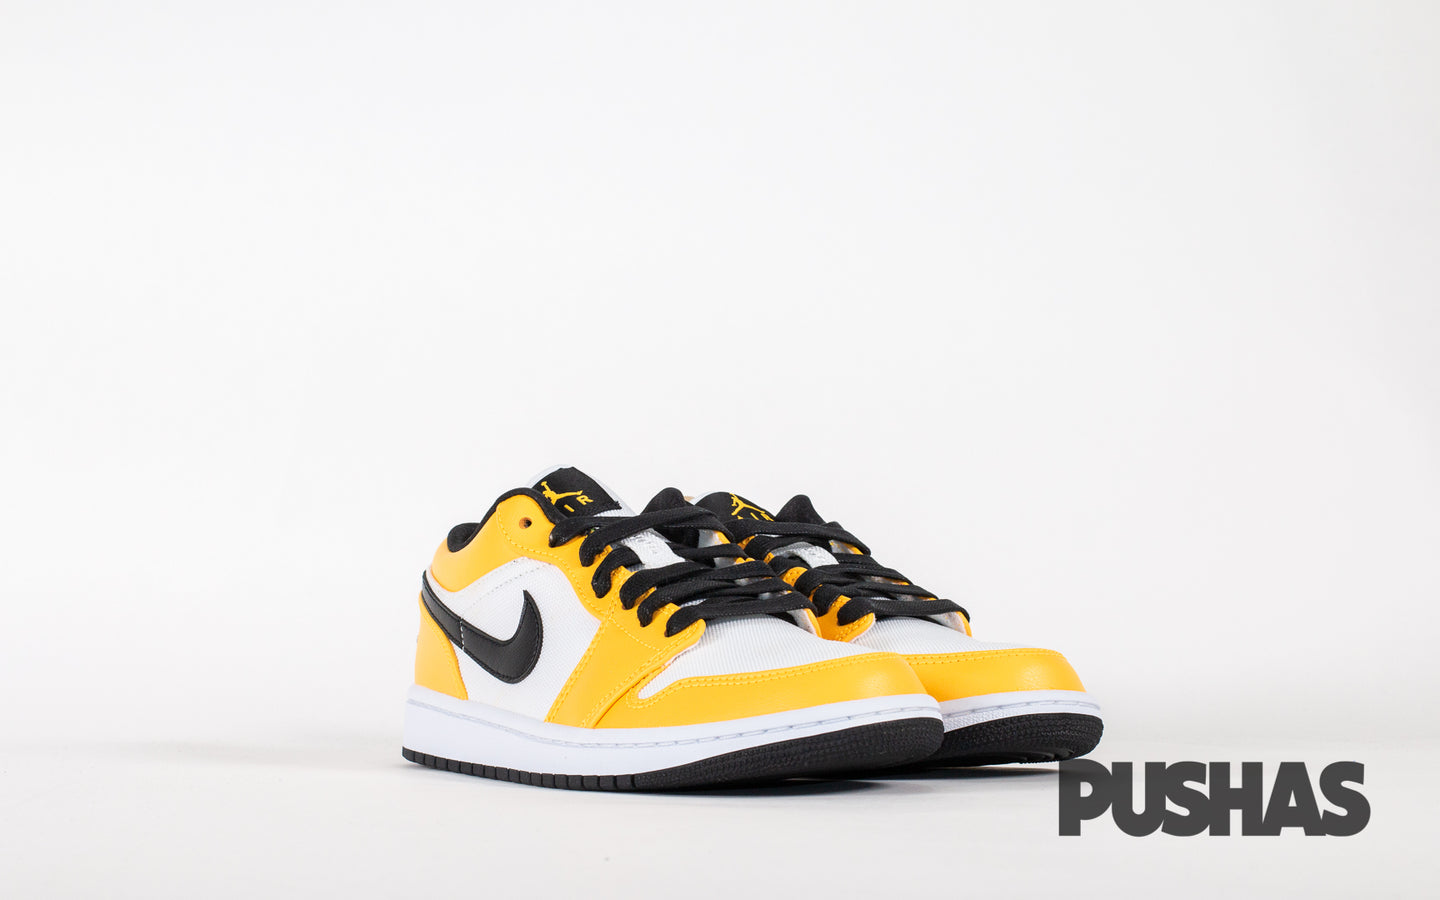 pushas-nike-Air-Jordan-1-Low-Laser-Orange-W